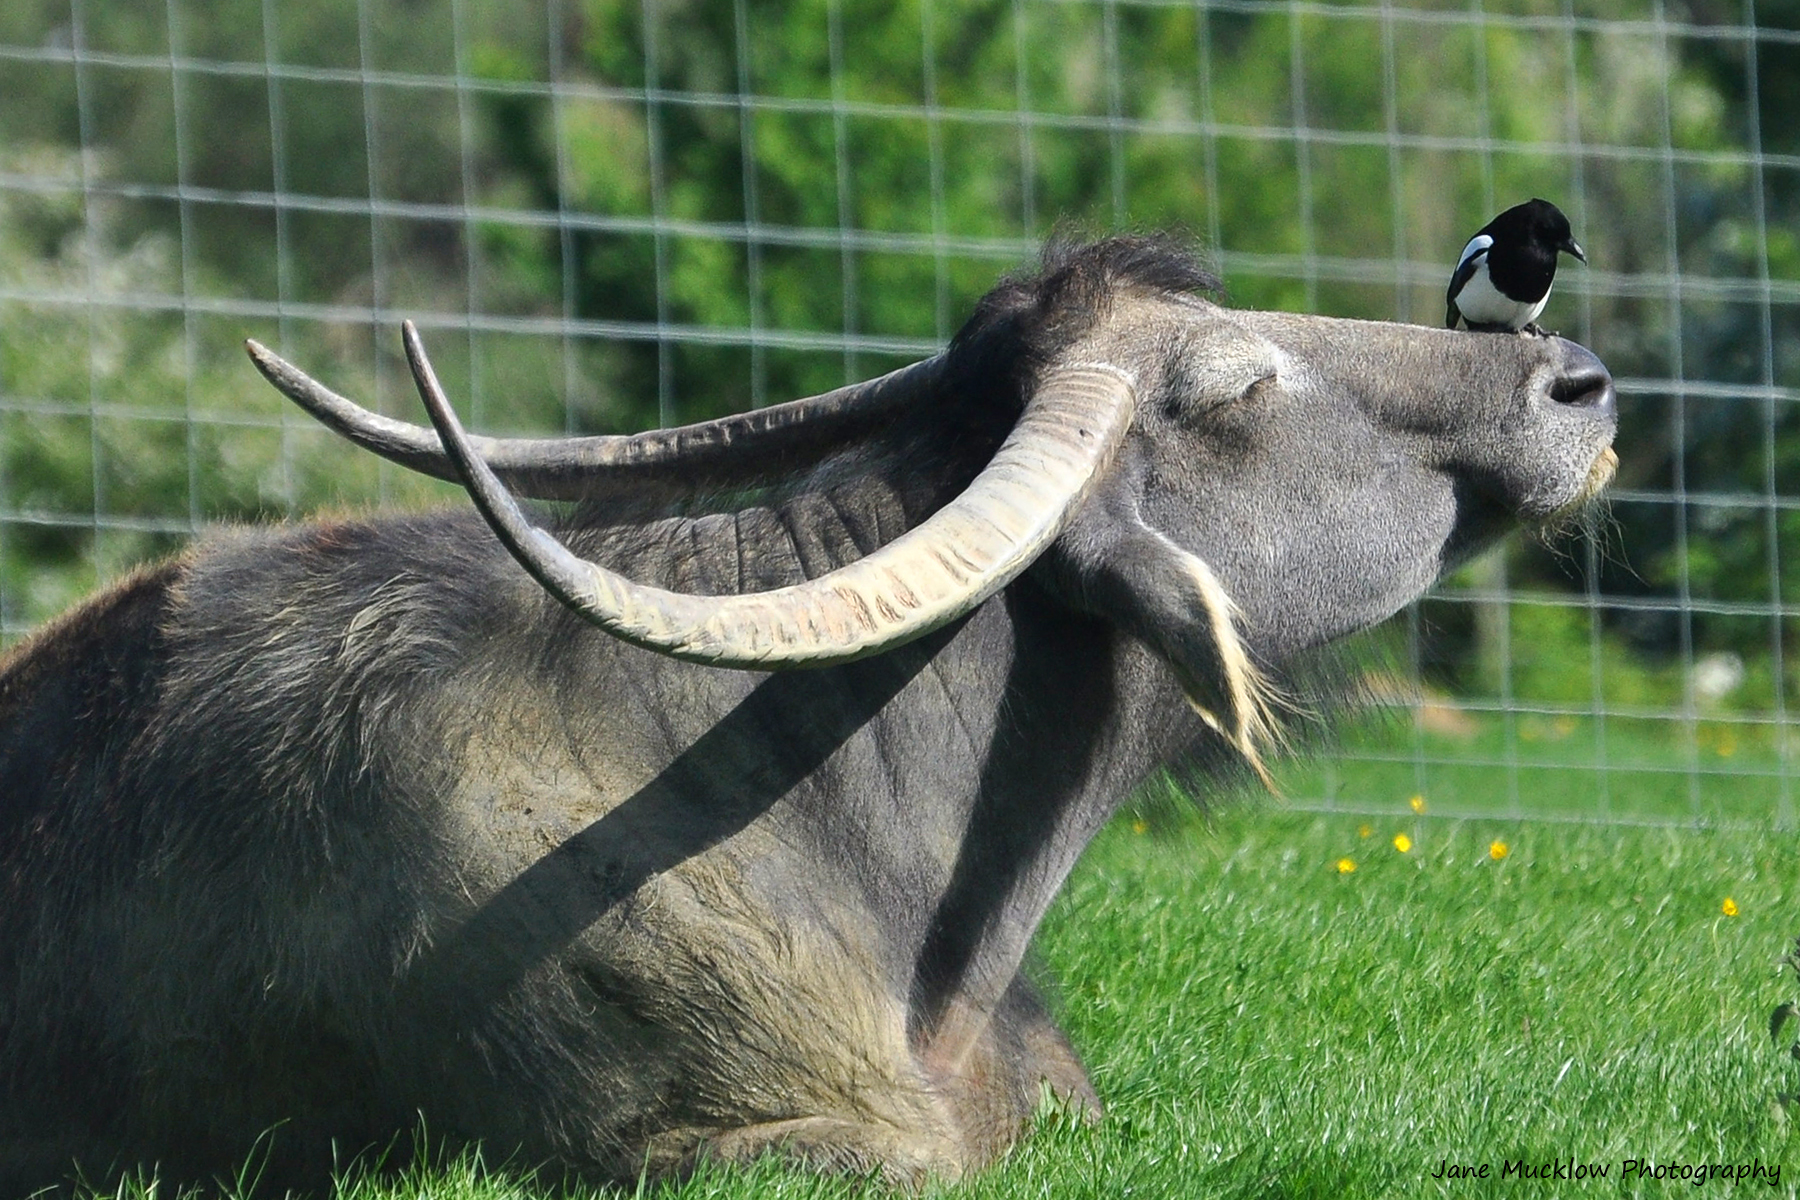 Photo of the safari at the Networkers Networking event at Port Lympne, of a water buffalo and magpie, by Jane Mucklow